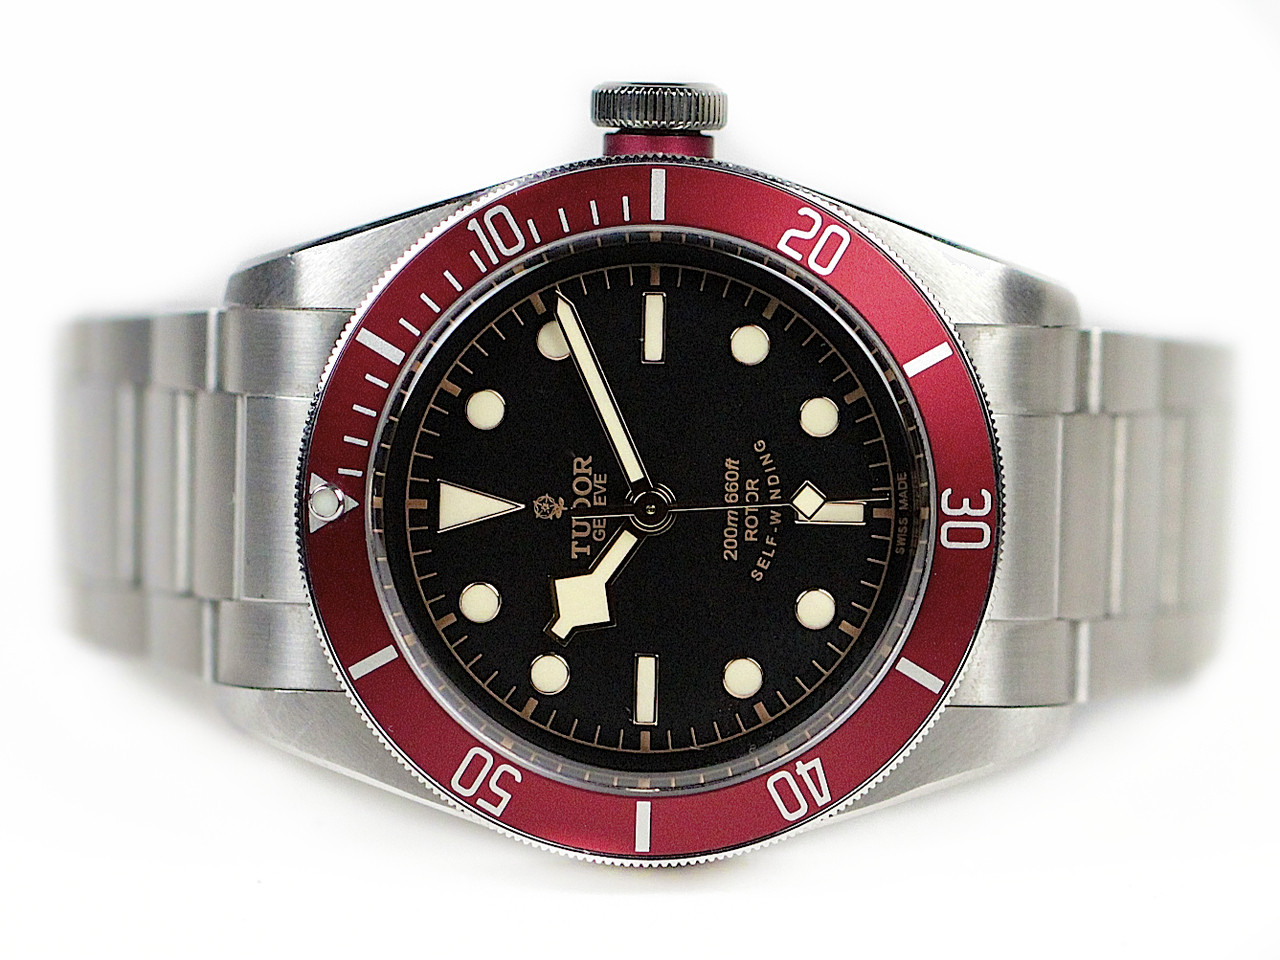 Tudor heritage black bay automatic used sale www - Tudor dive watch price ...